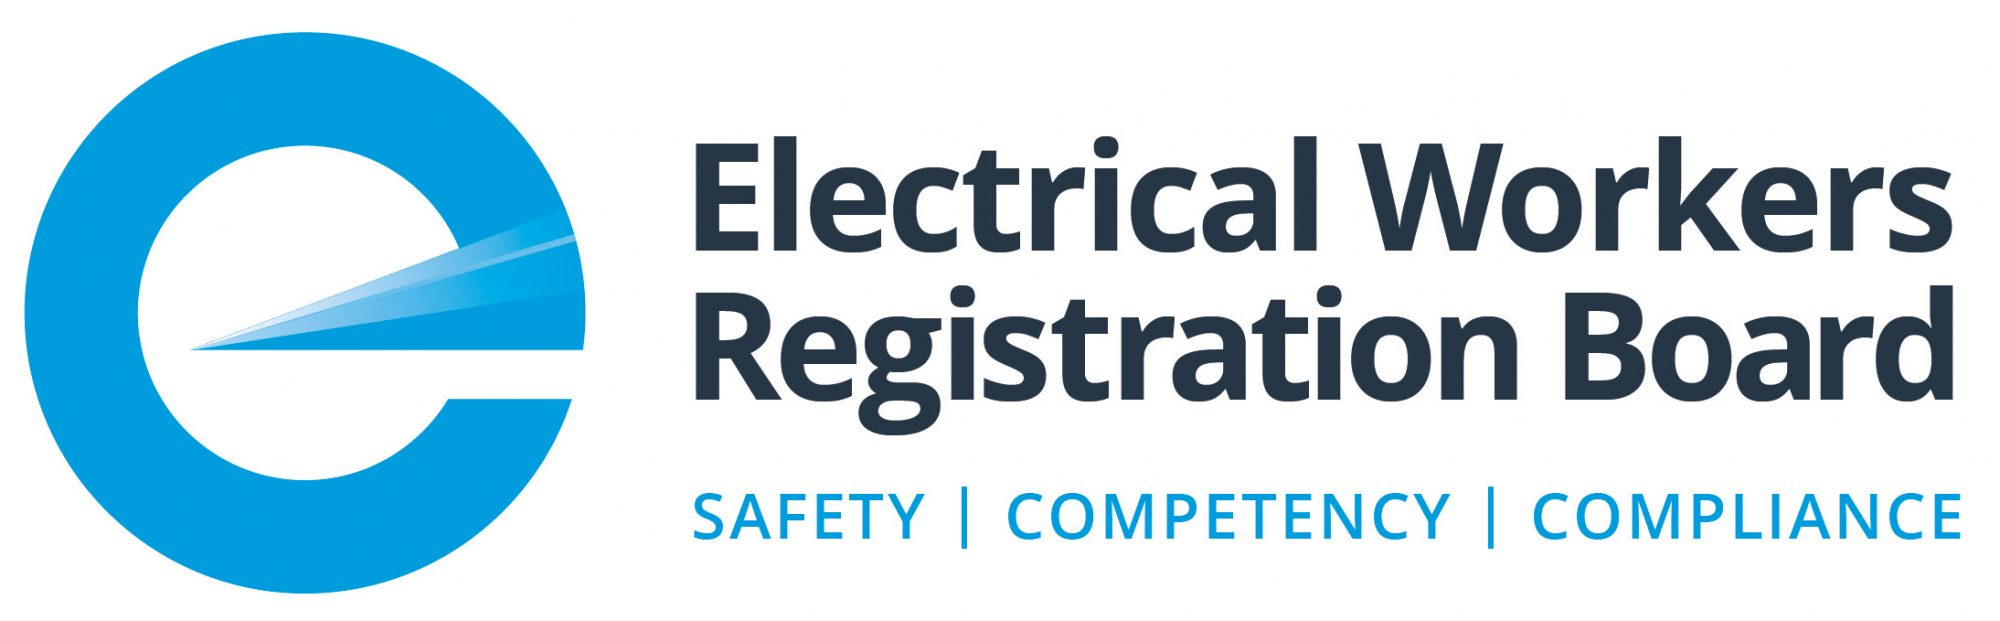 Electricity Workers Registration Board logo